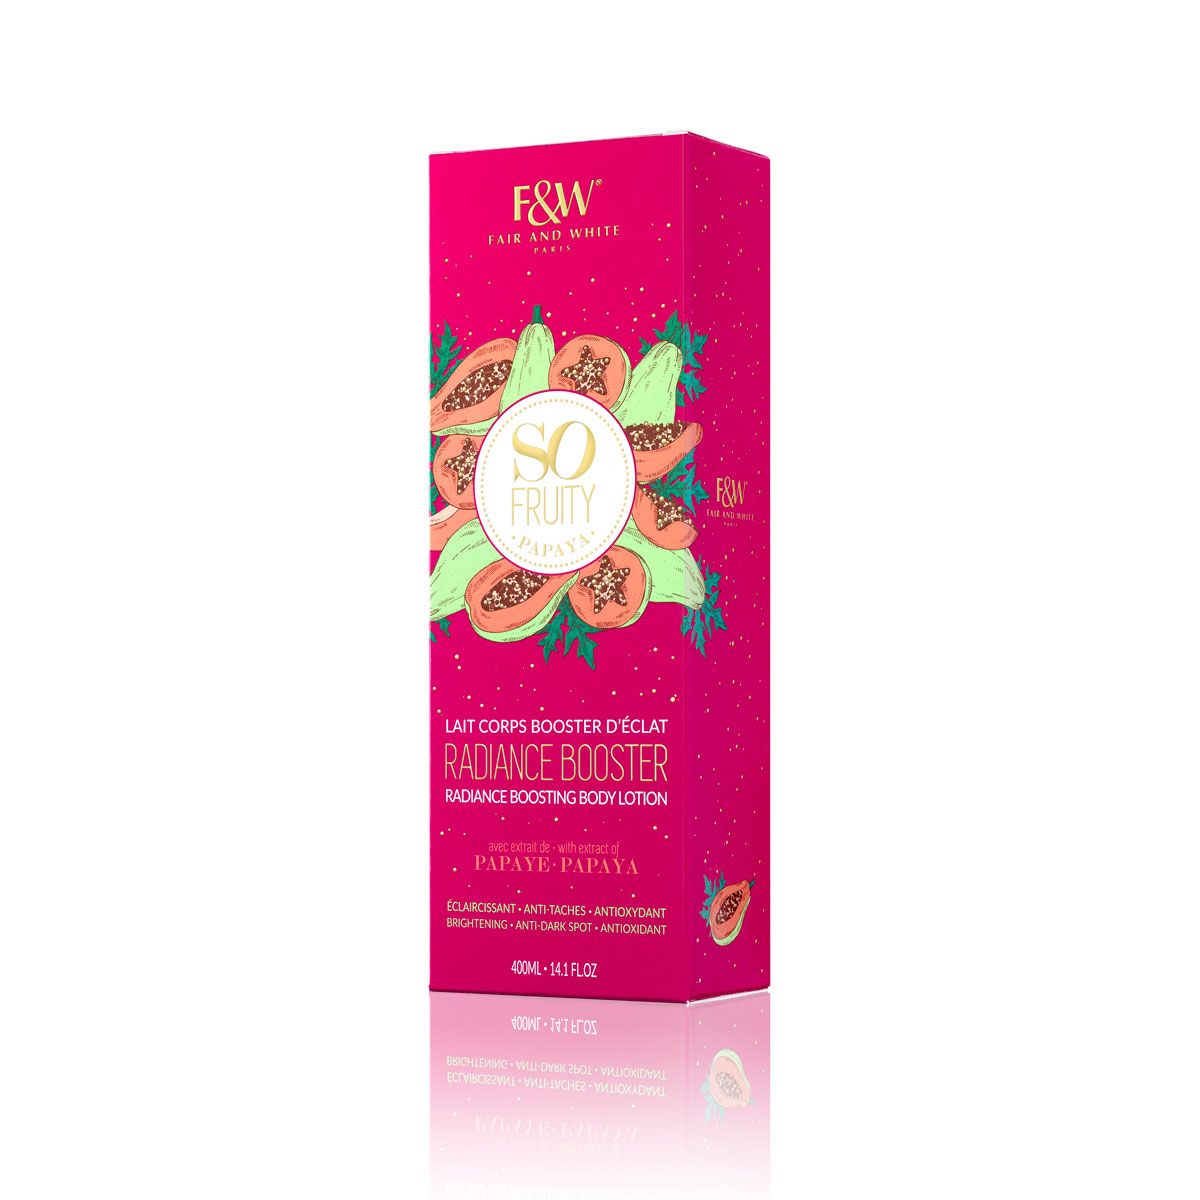 Lait Corps Booster d'Eclat | So Fruity Papaya